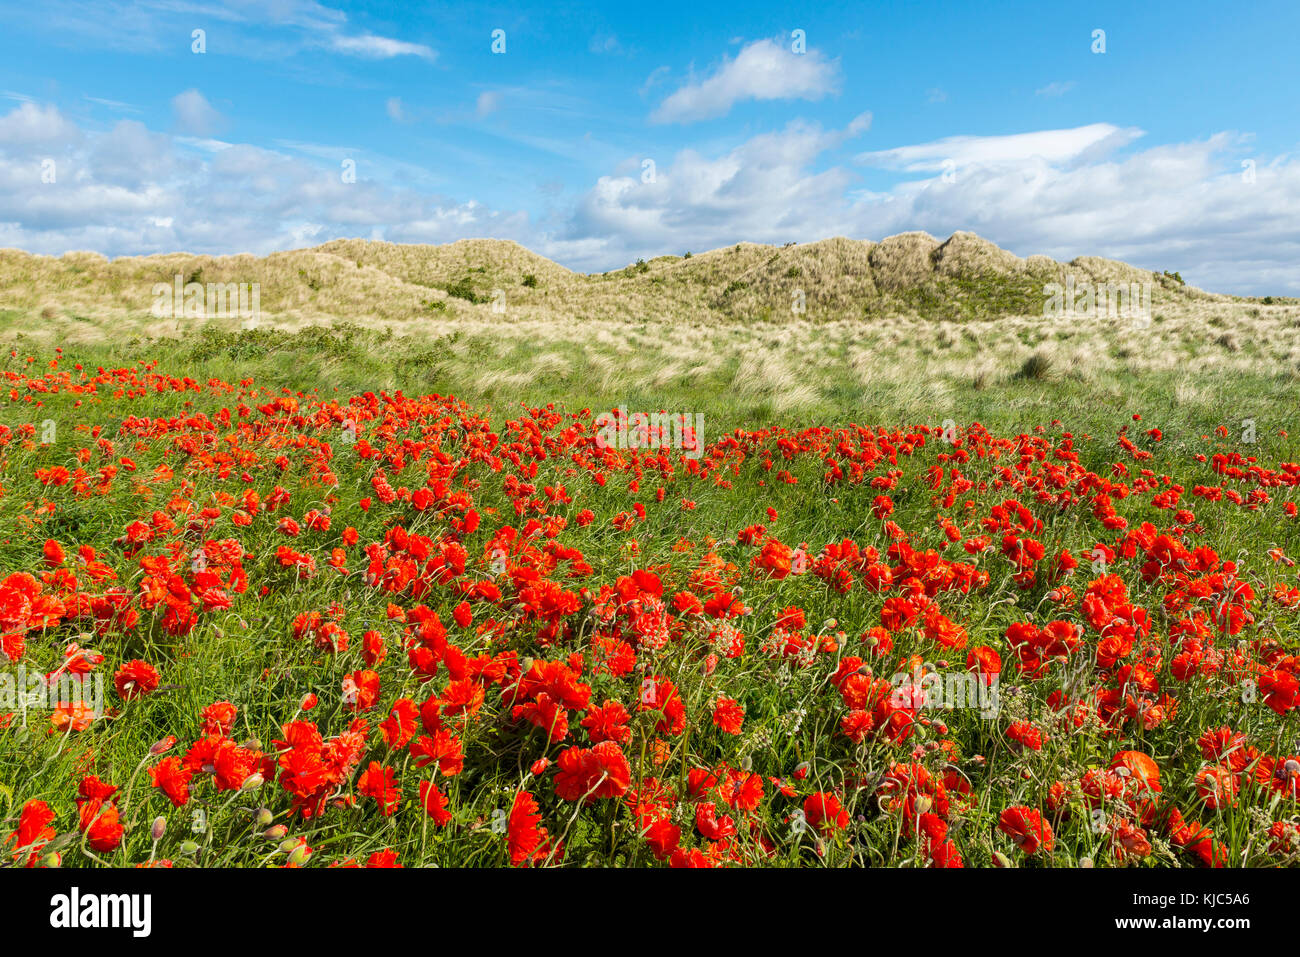 Field of red poppies with grassy sand dunes in the background at the beach in Bamburgh, Northumberland, England, - Stock Image